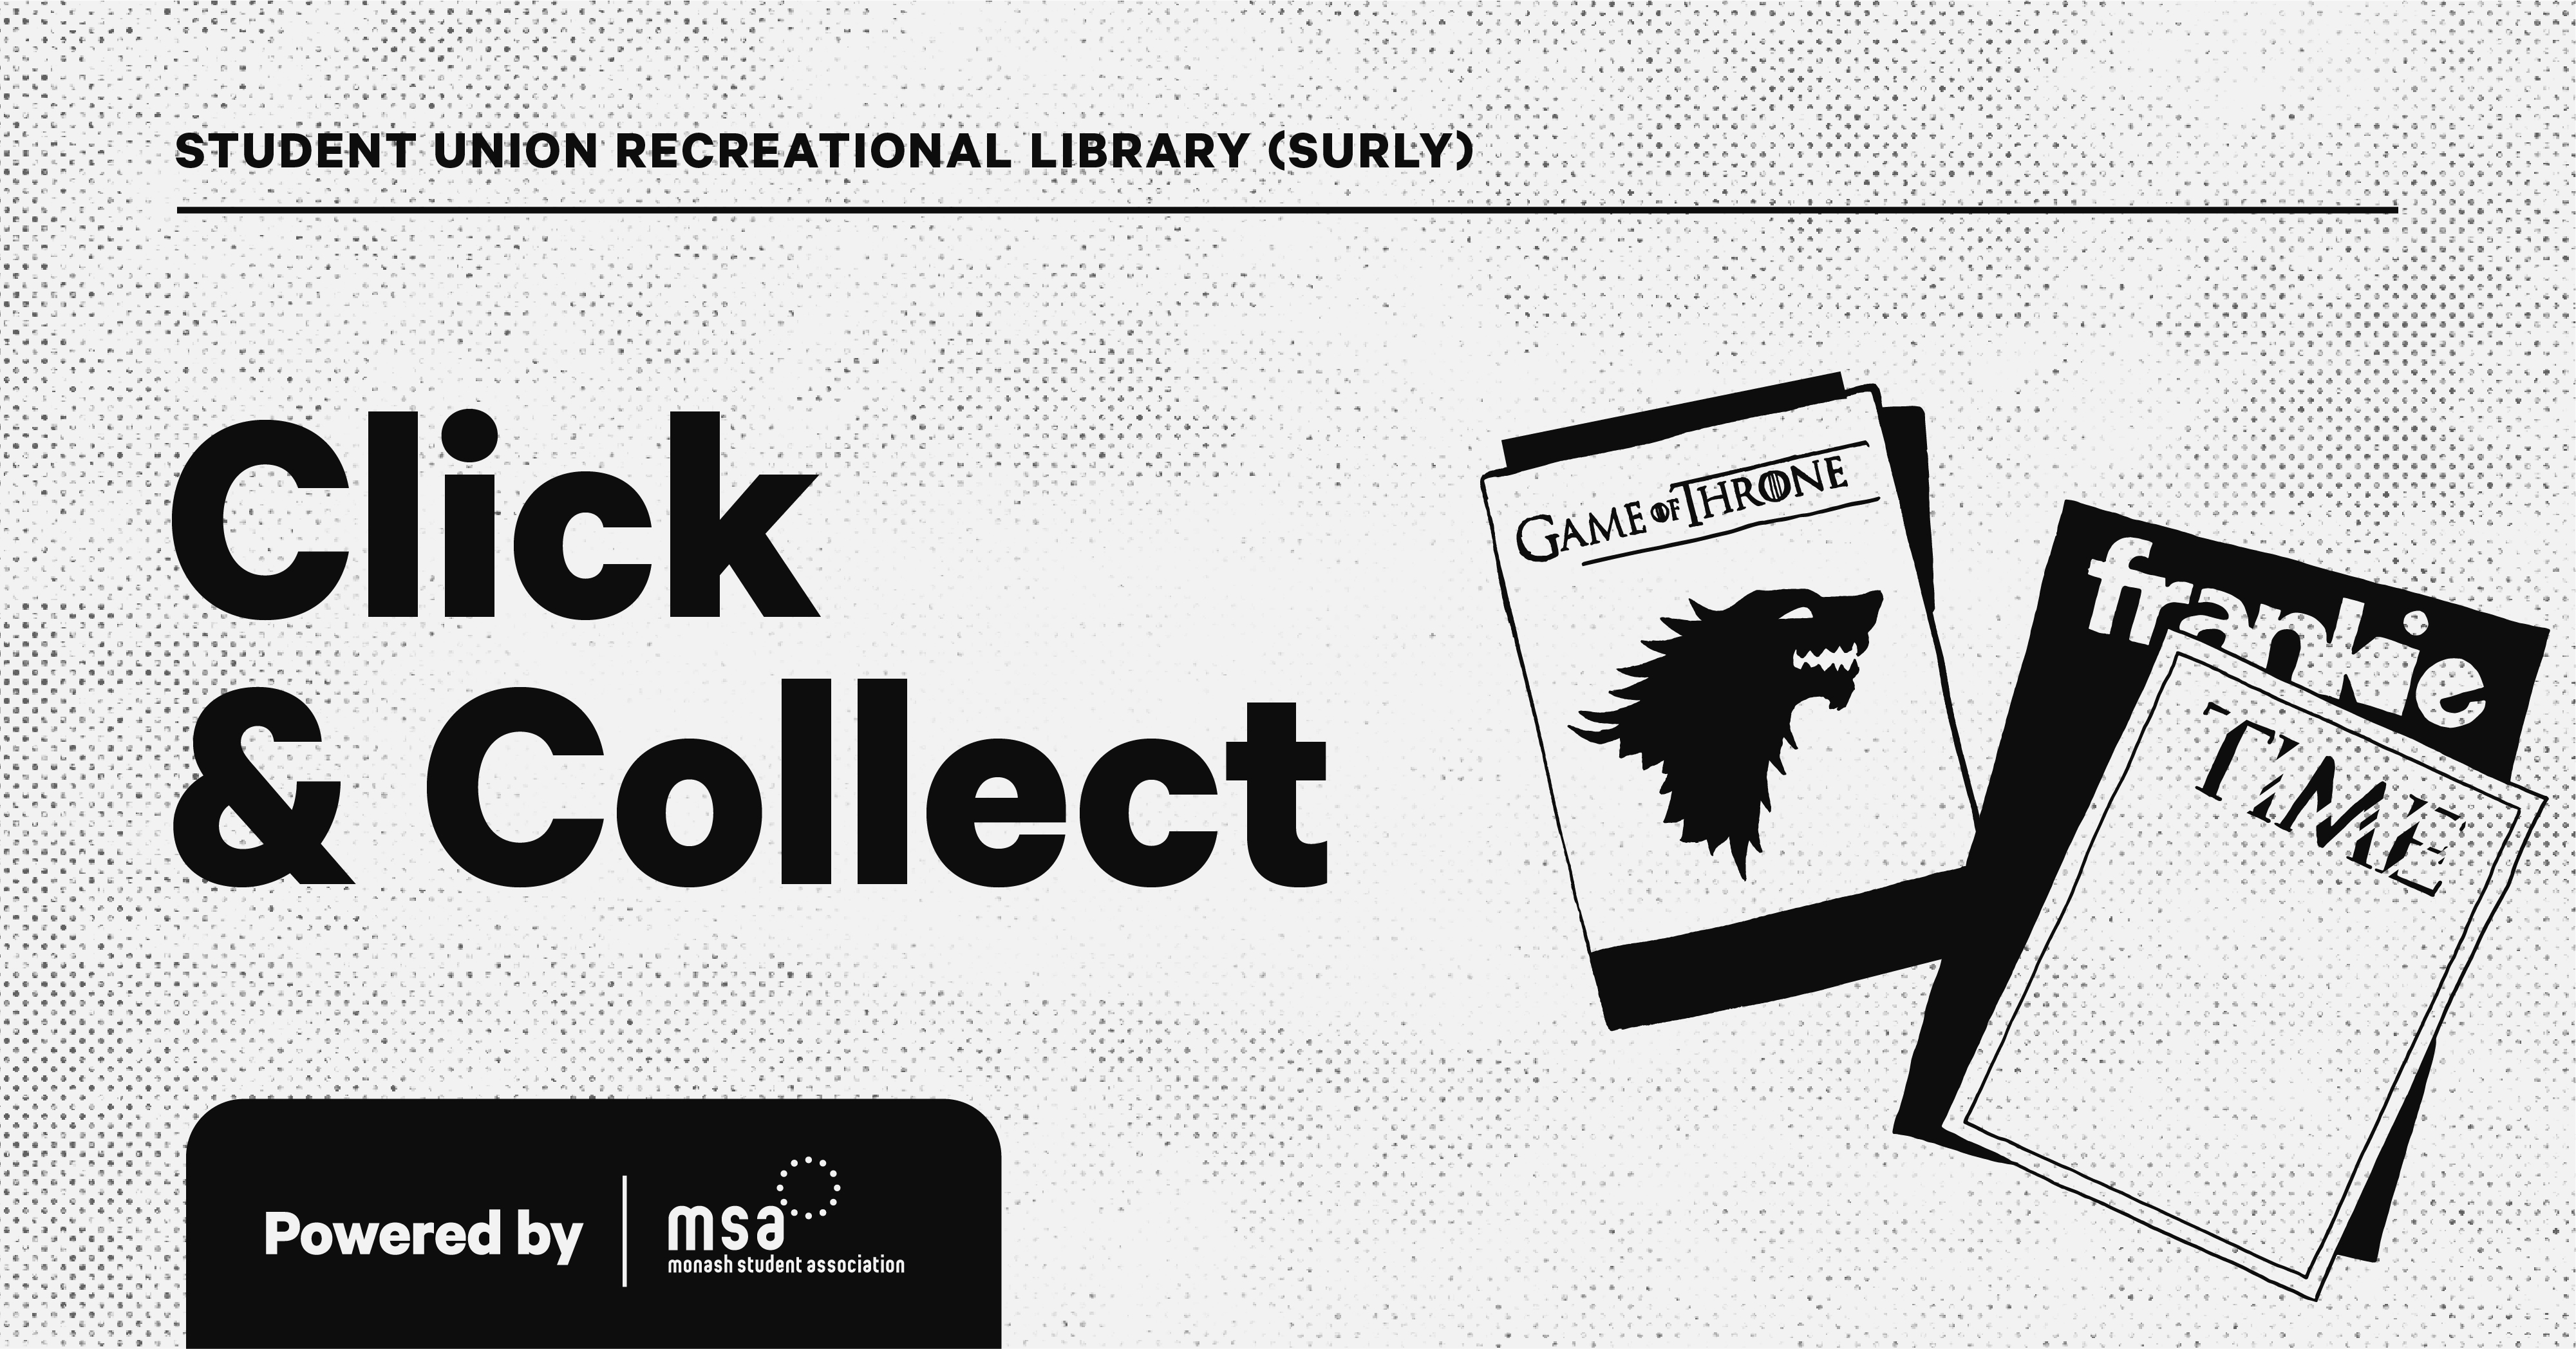 SURLY Click & Collect: How to Request Books